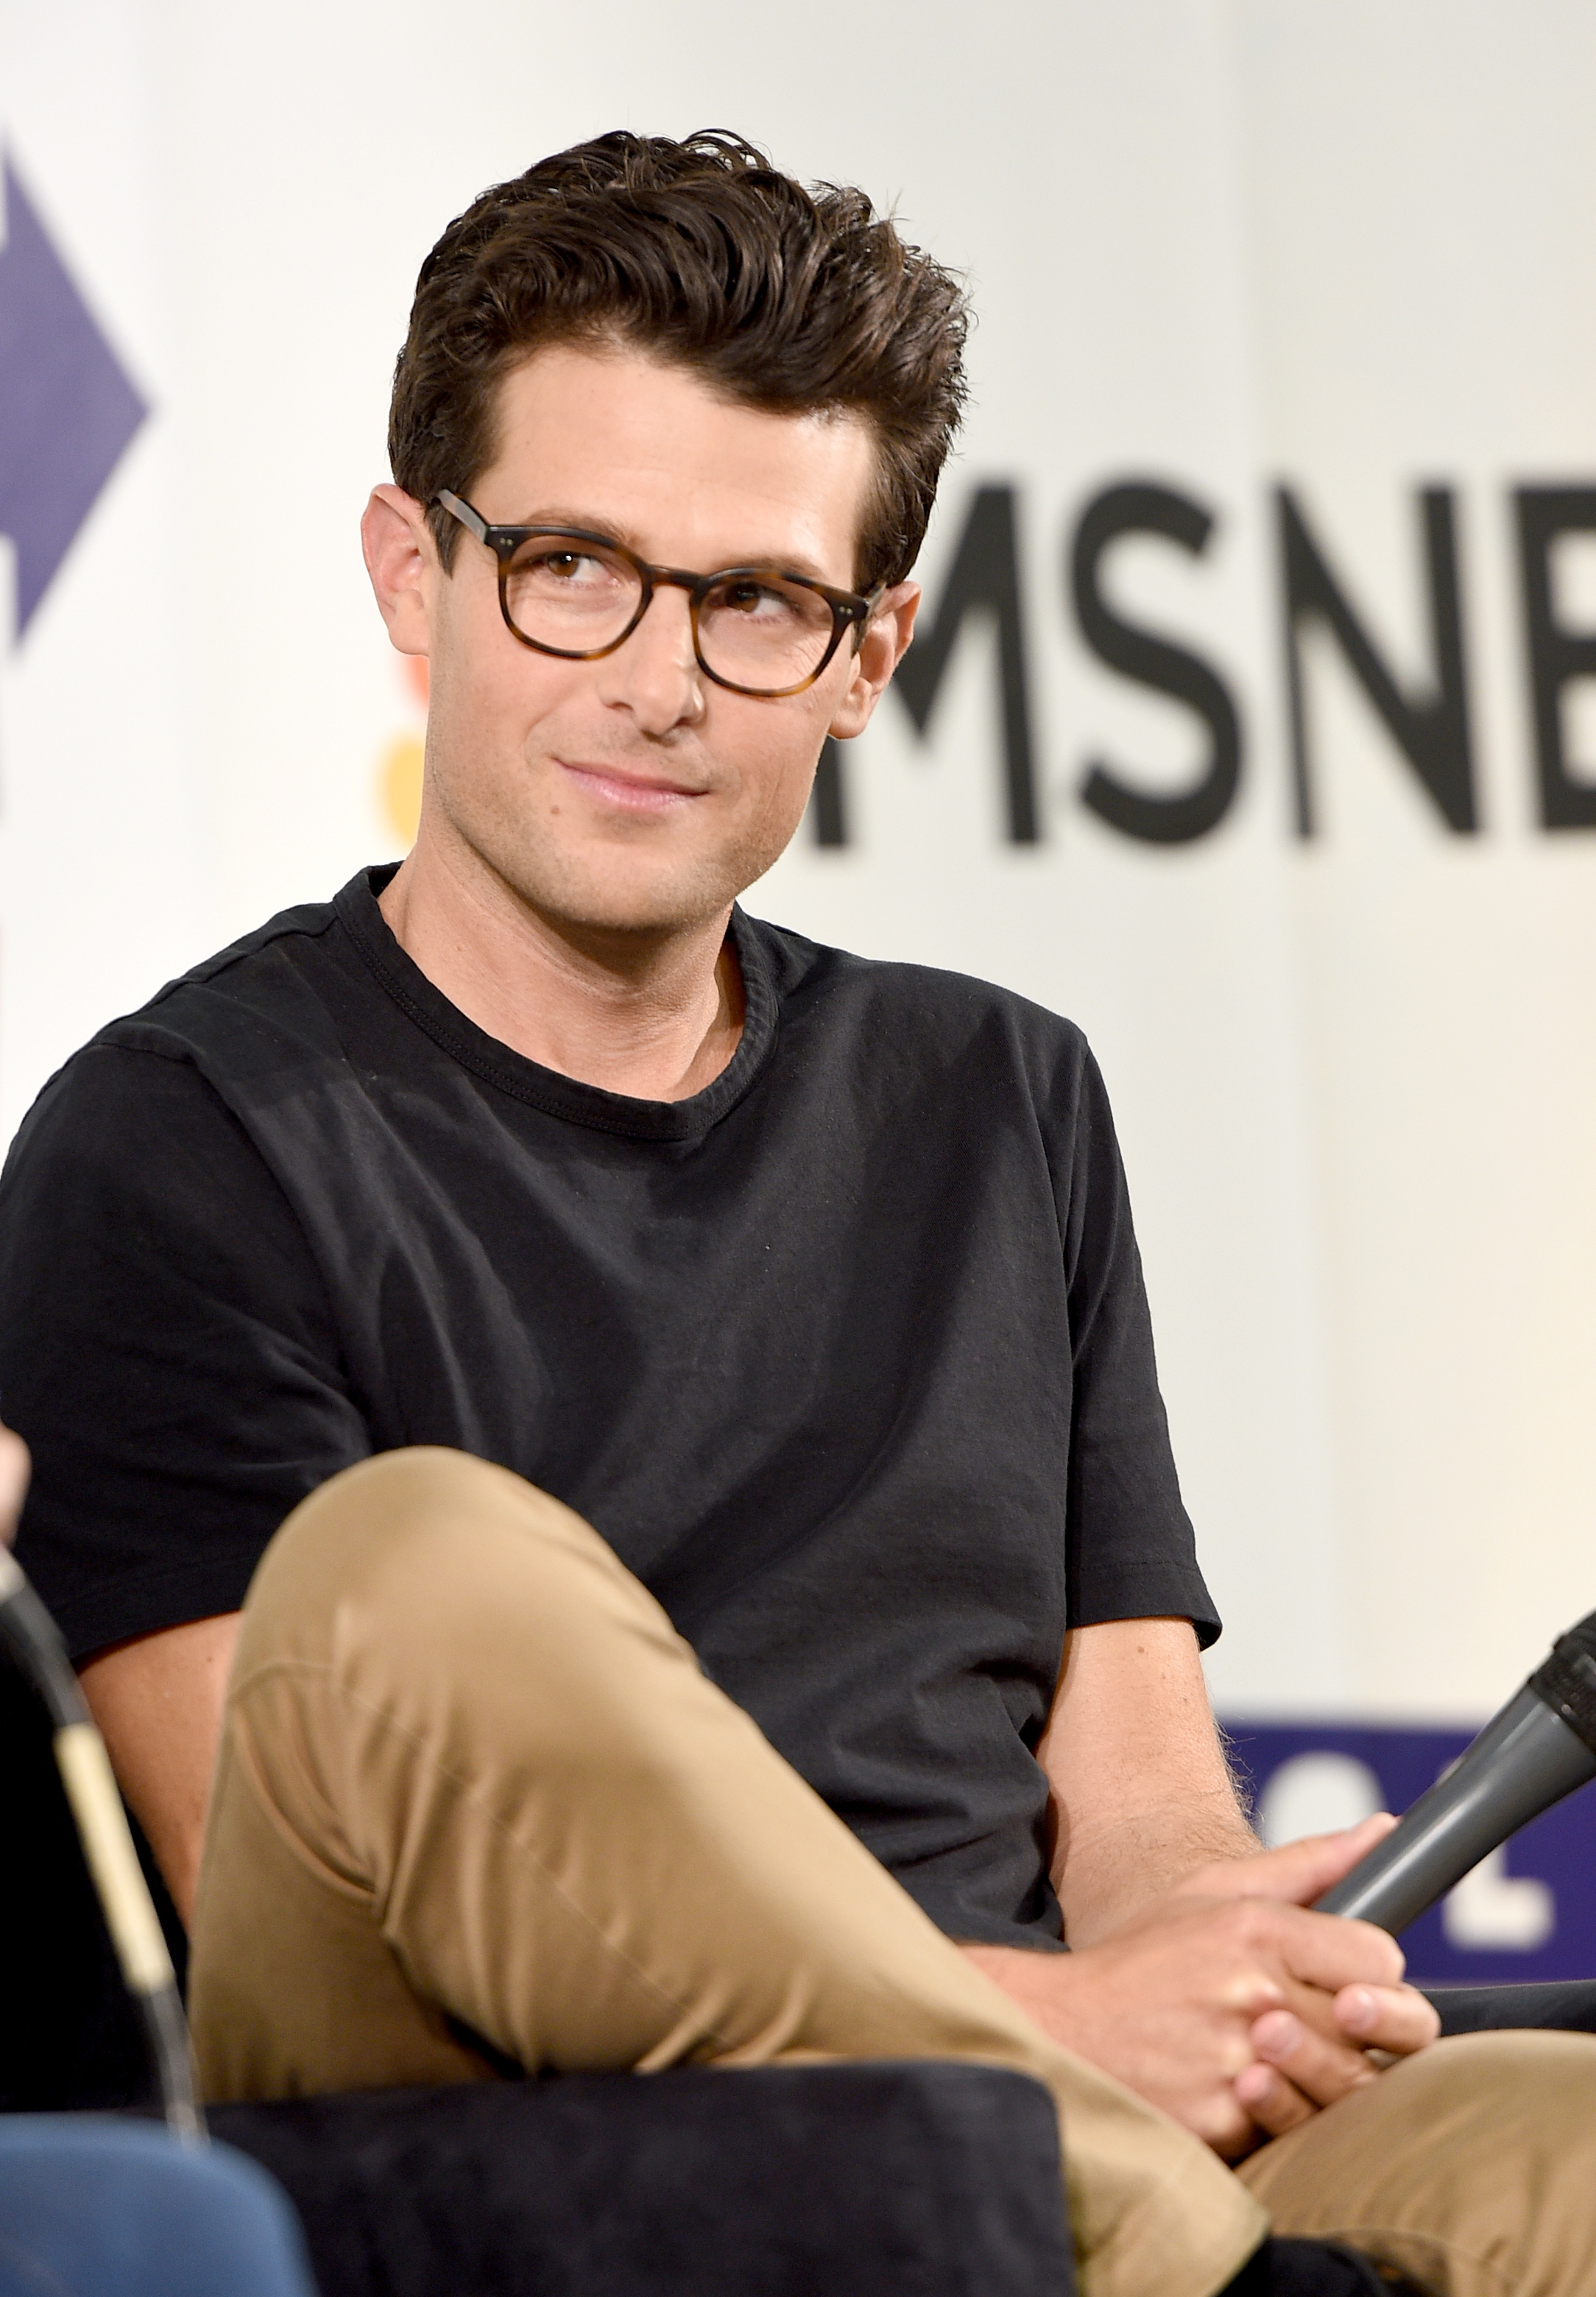 PASADENA, CA - JULY 30: Jacob Soboroff at the 'MSNBC: Lessons From The Road' panel during Politicon at Pasadena Convention Center on July 30, 2017 in Pasadena, California. (Photo by Joshua Blanchard/Getty Images for Politicon)